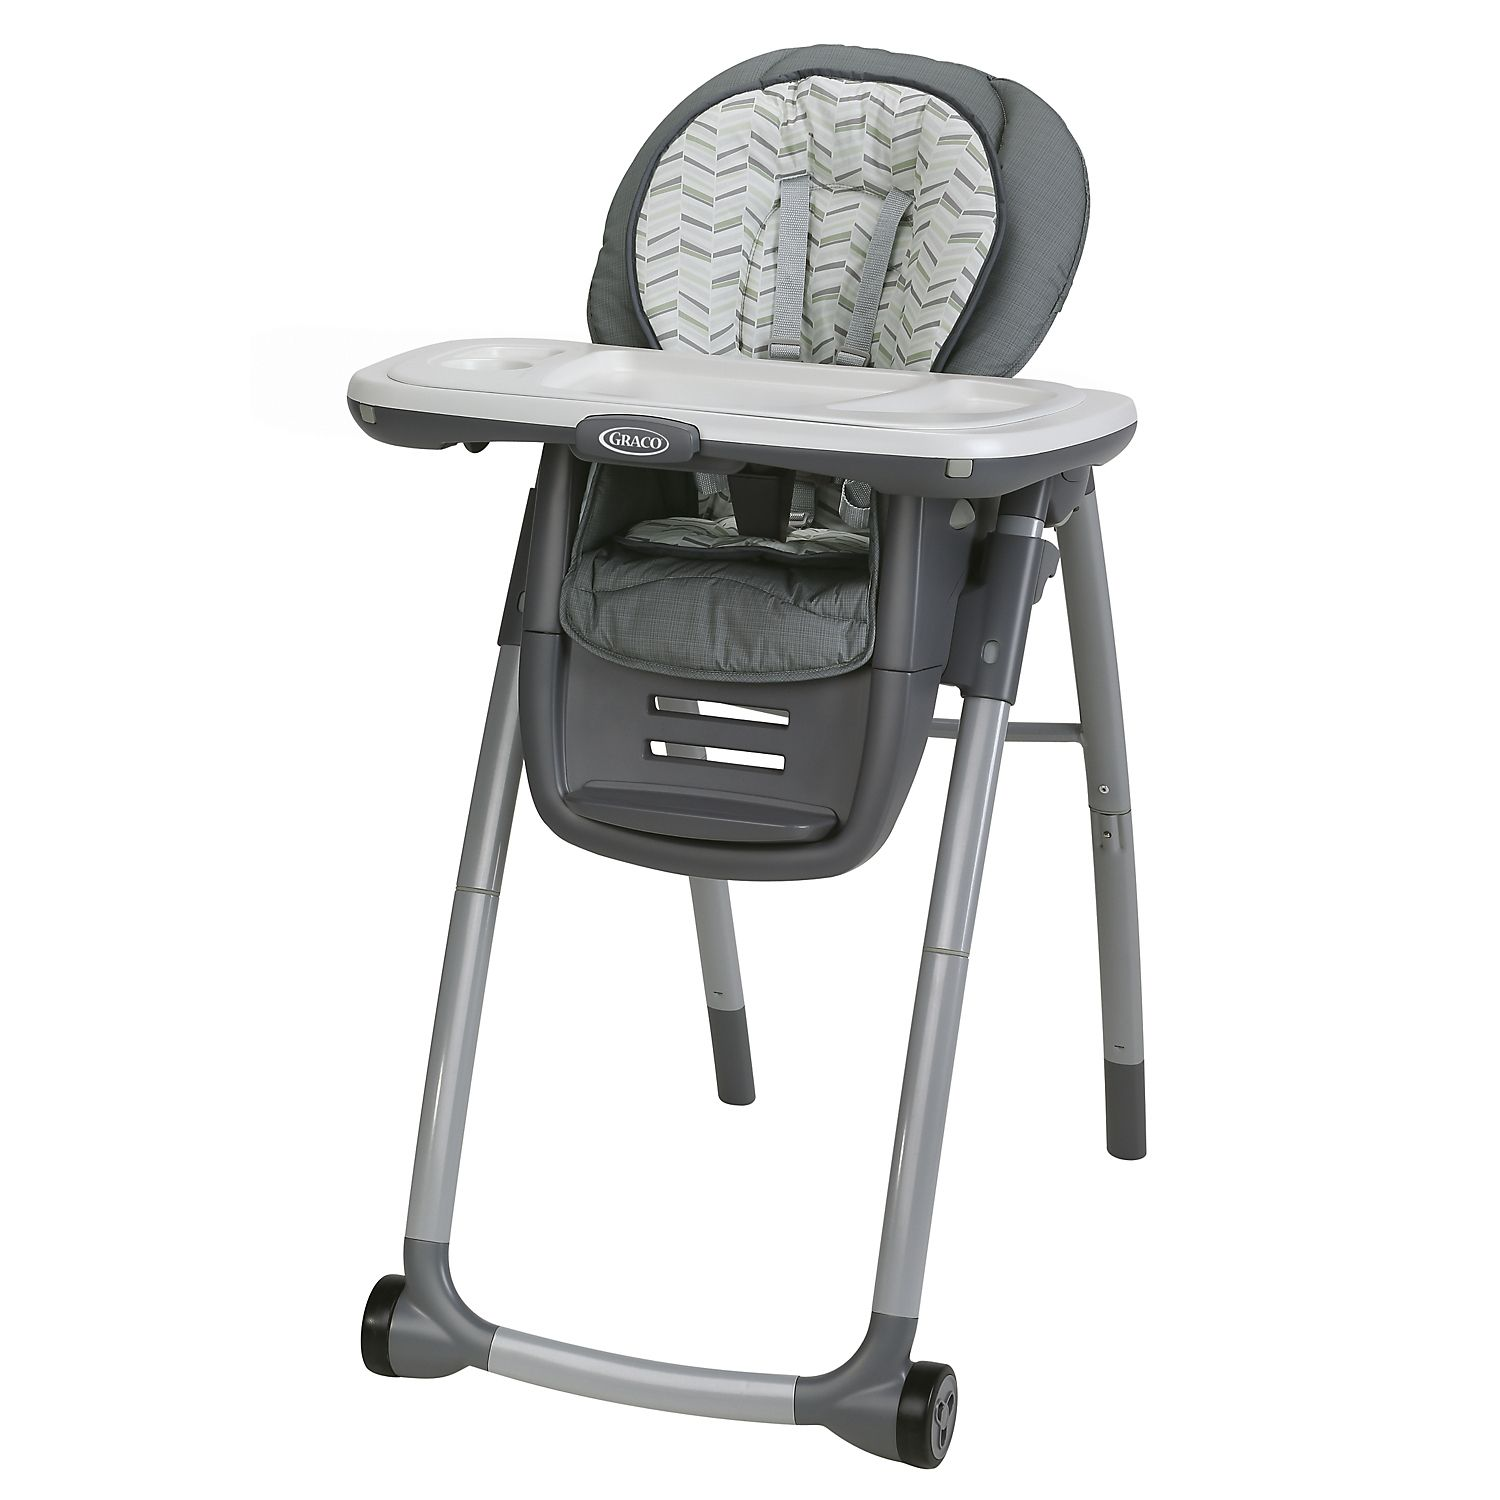 Graco High Chair 4 In 1 Bought From Amazon In Great Condition